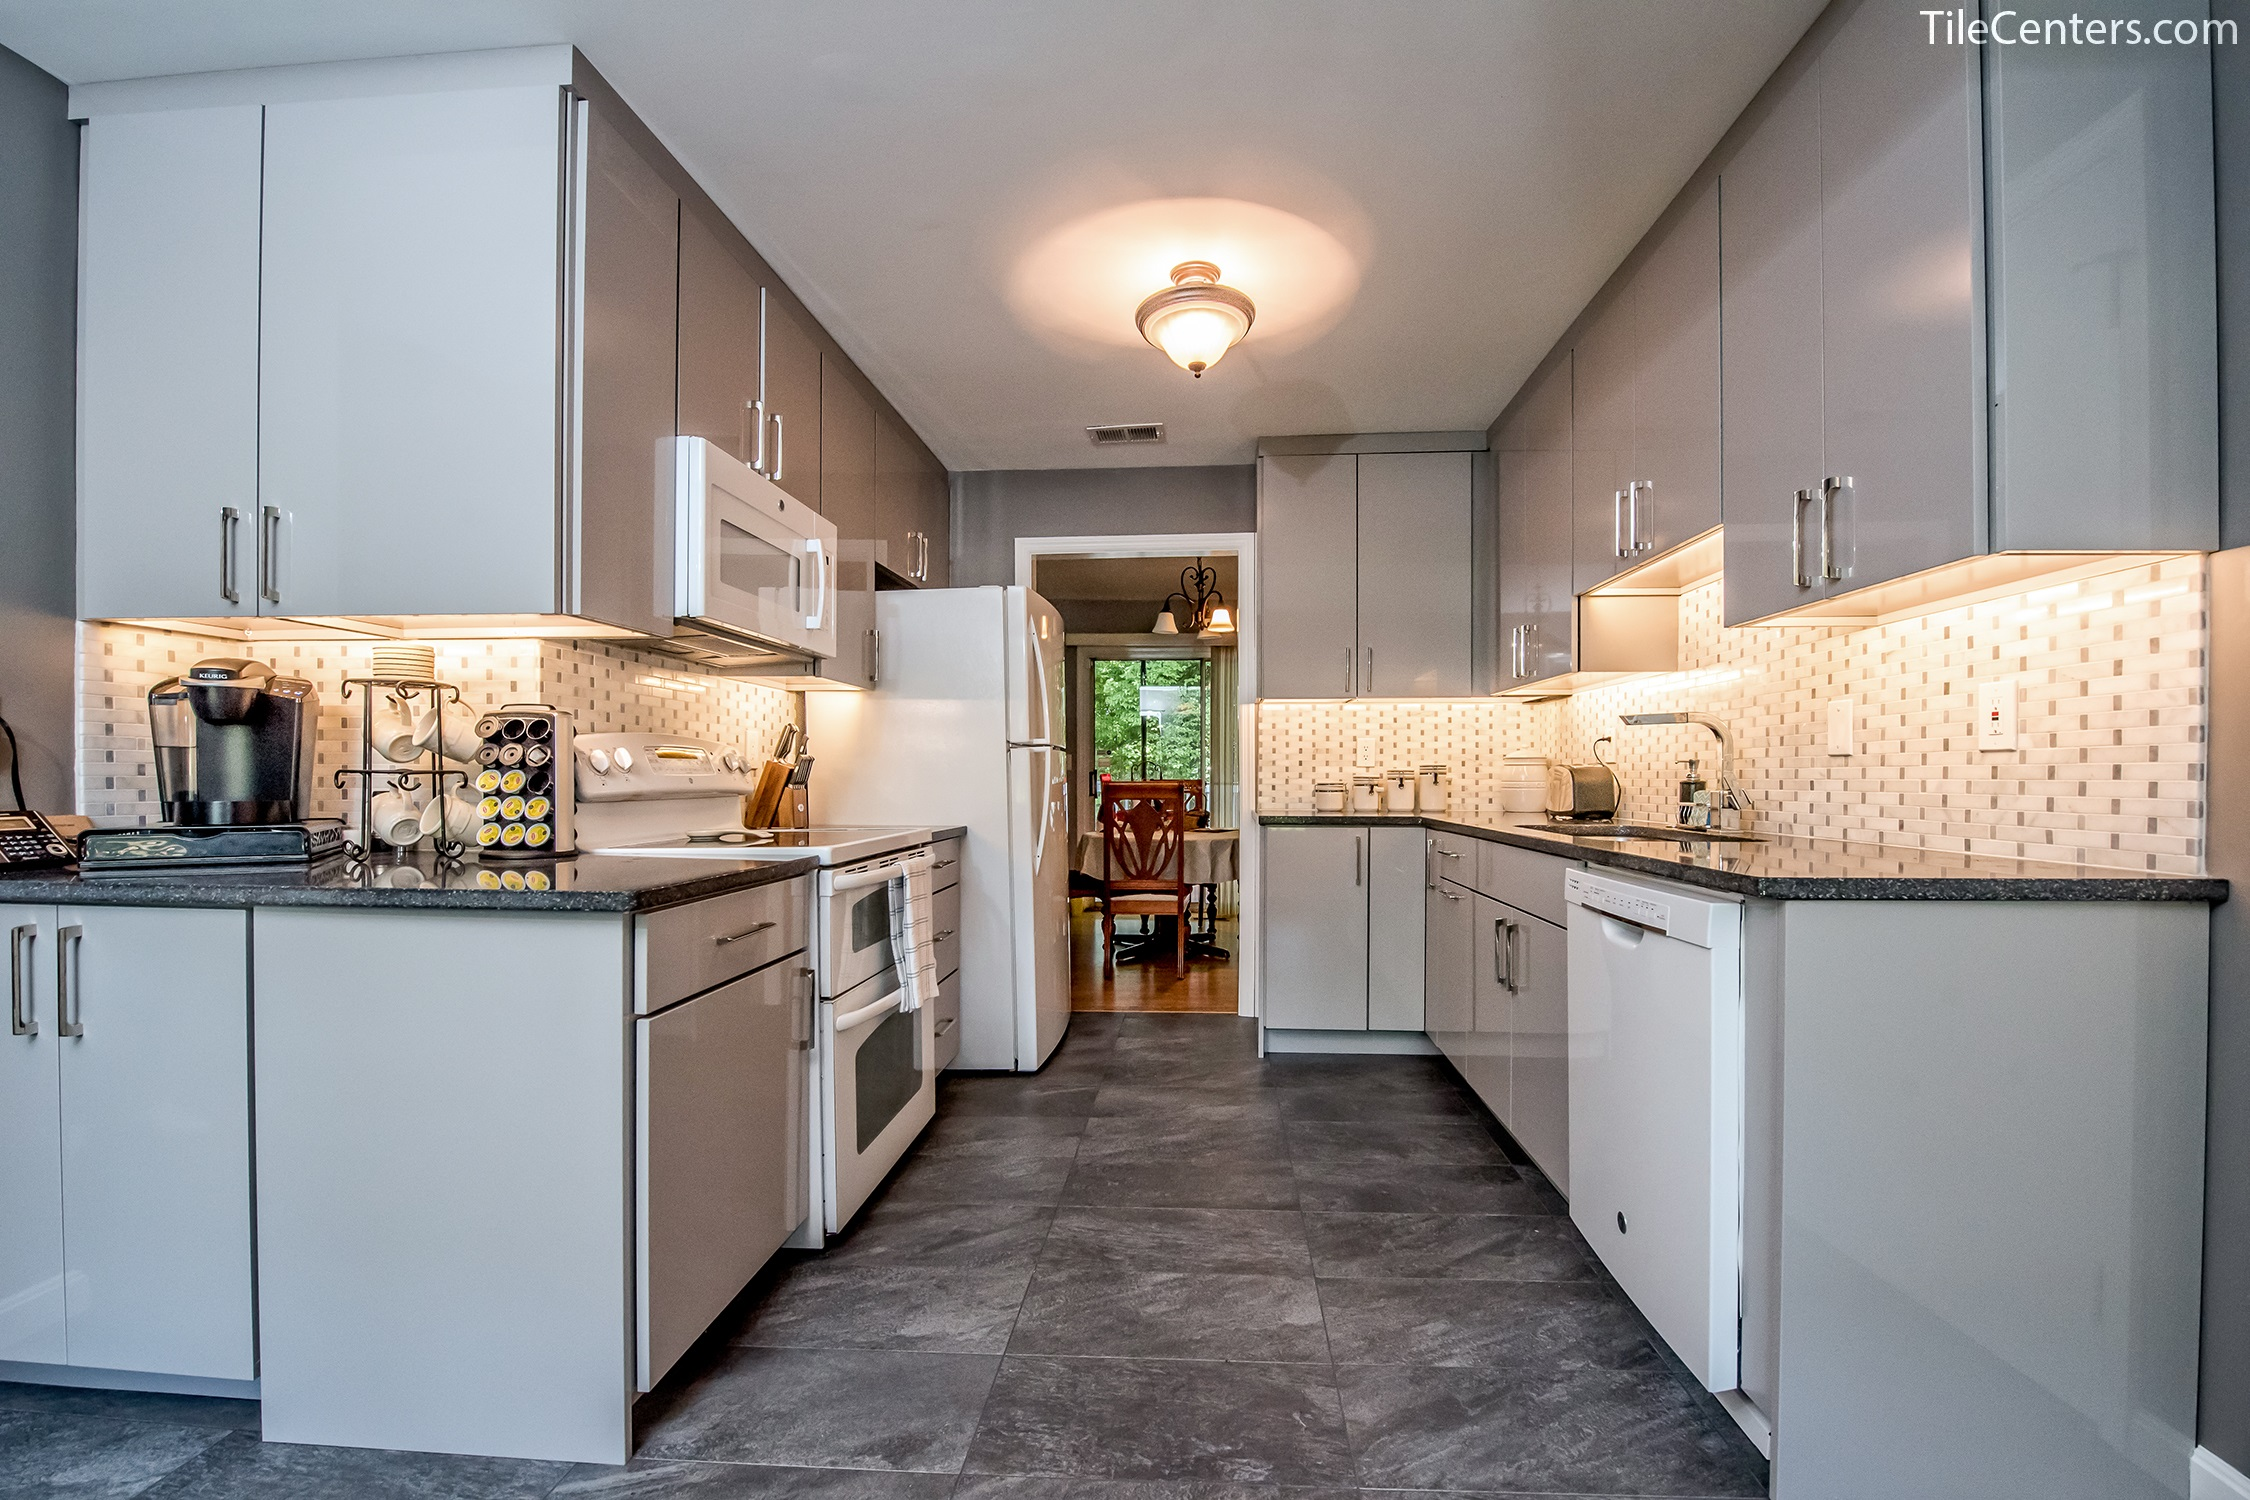 kitchen remodeling silver spring md cabinet kits sale white and grey remodel maximizing countertop space